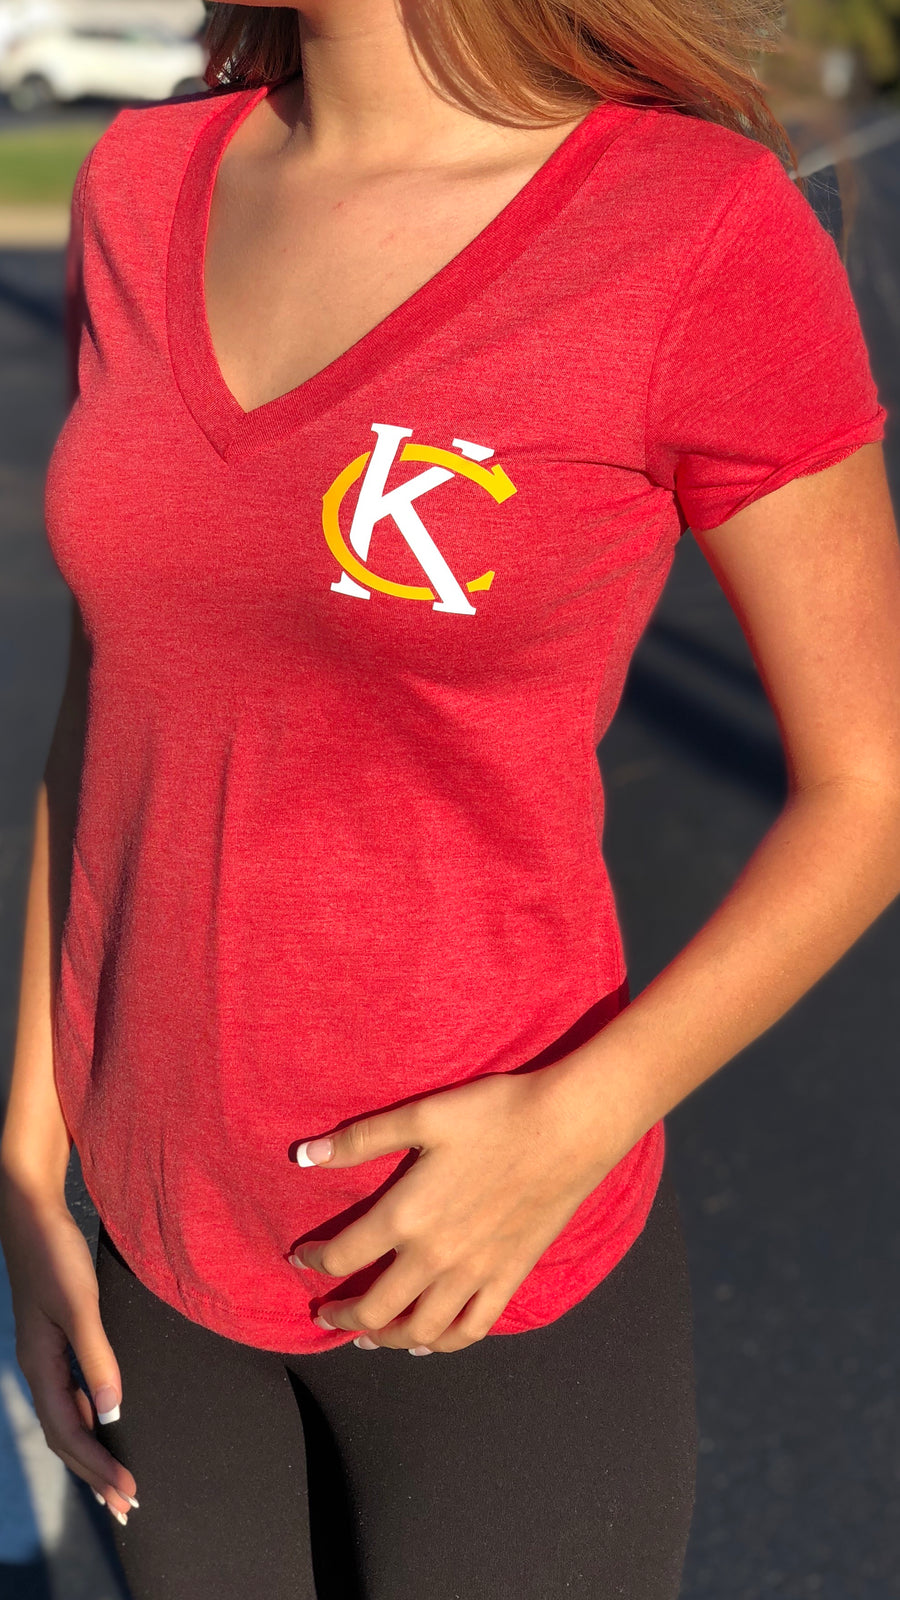 """Kc Logo"" - Next Level - Women's Triblend Deep V"